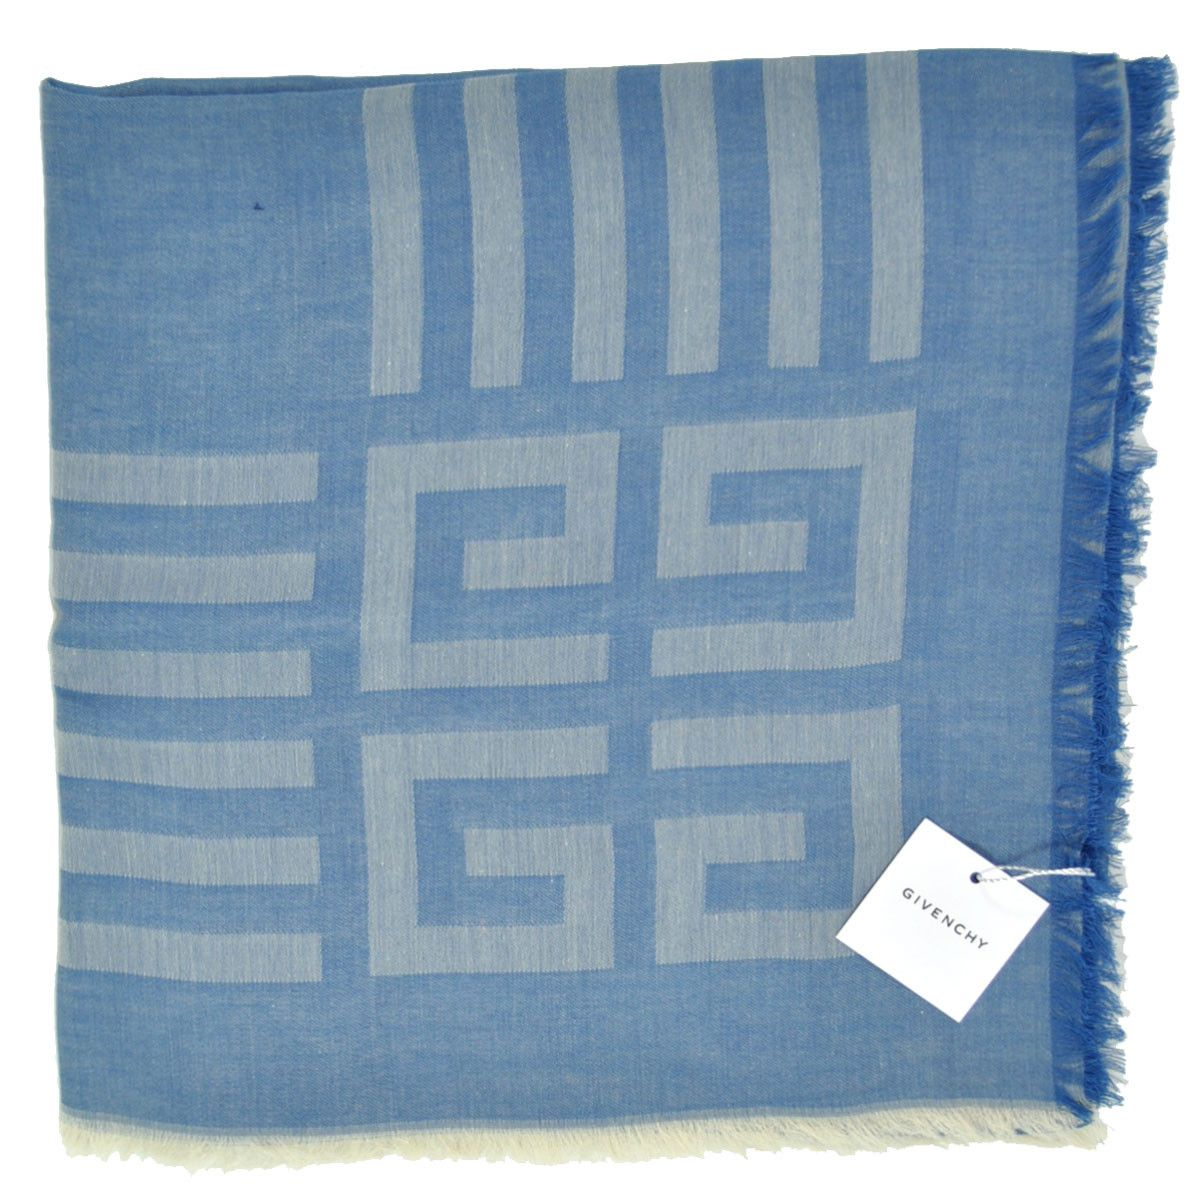 NEW Givenchy Scarf Blue Logo Design, Extra Large Square